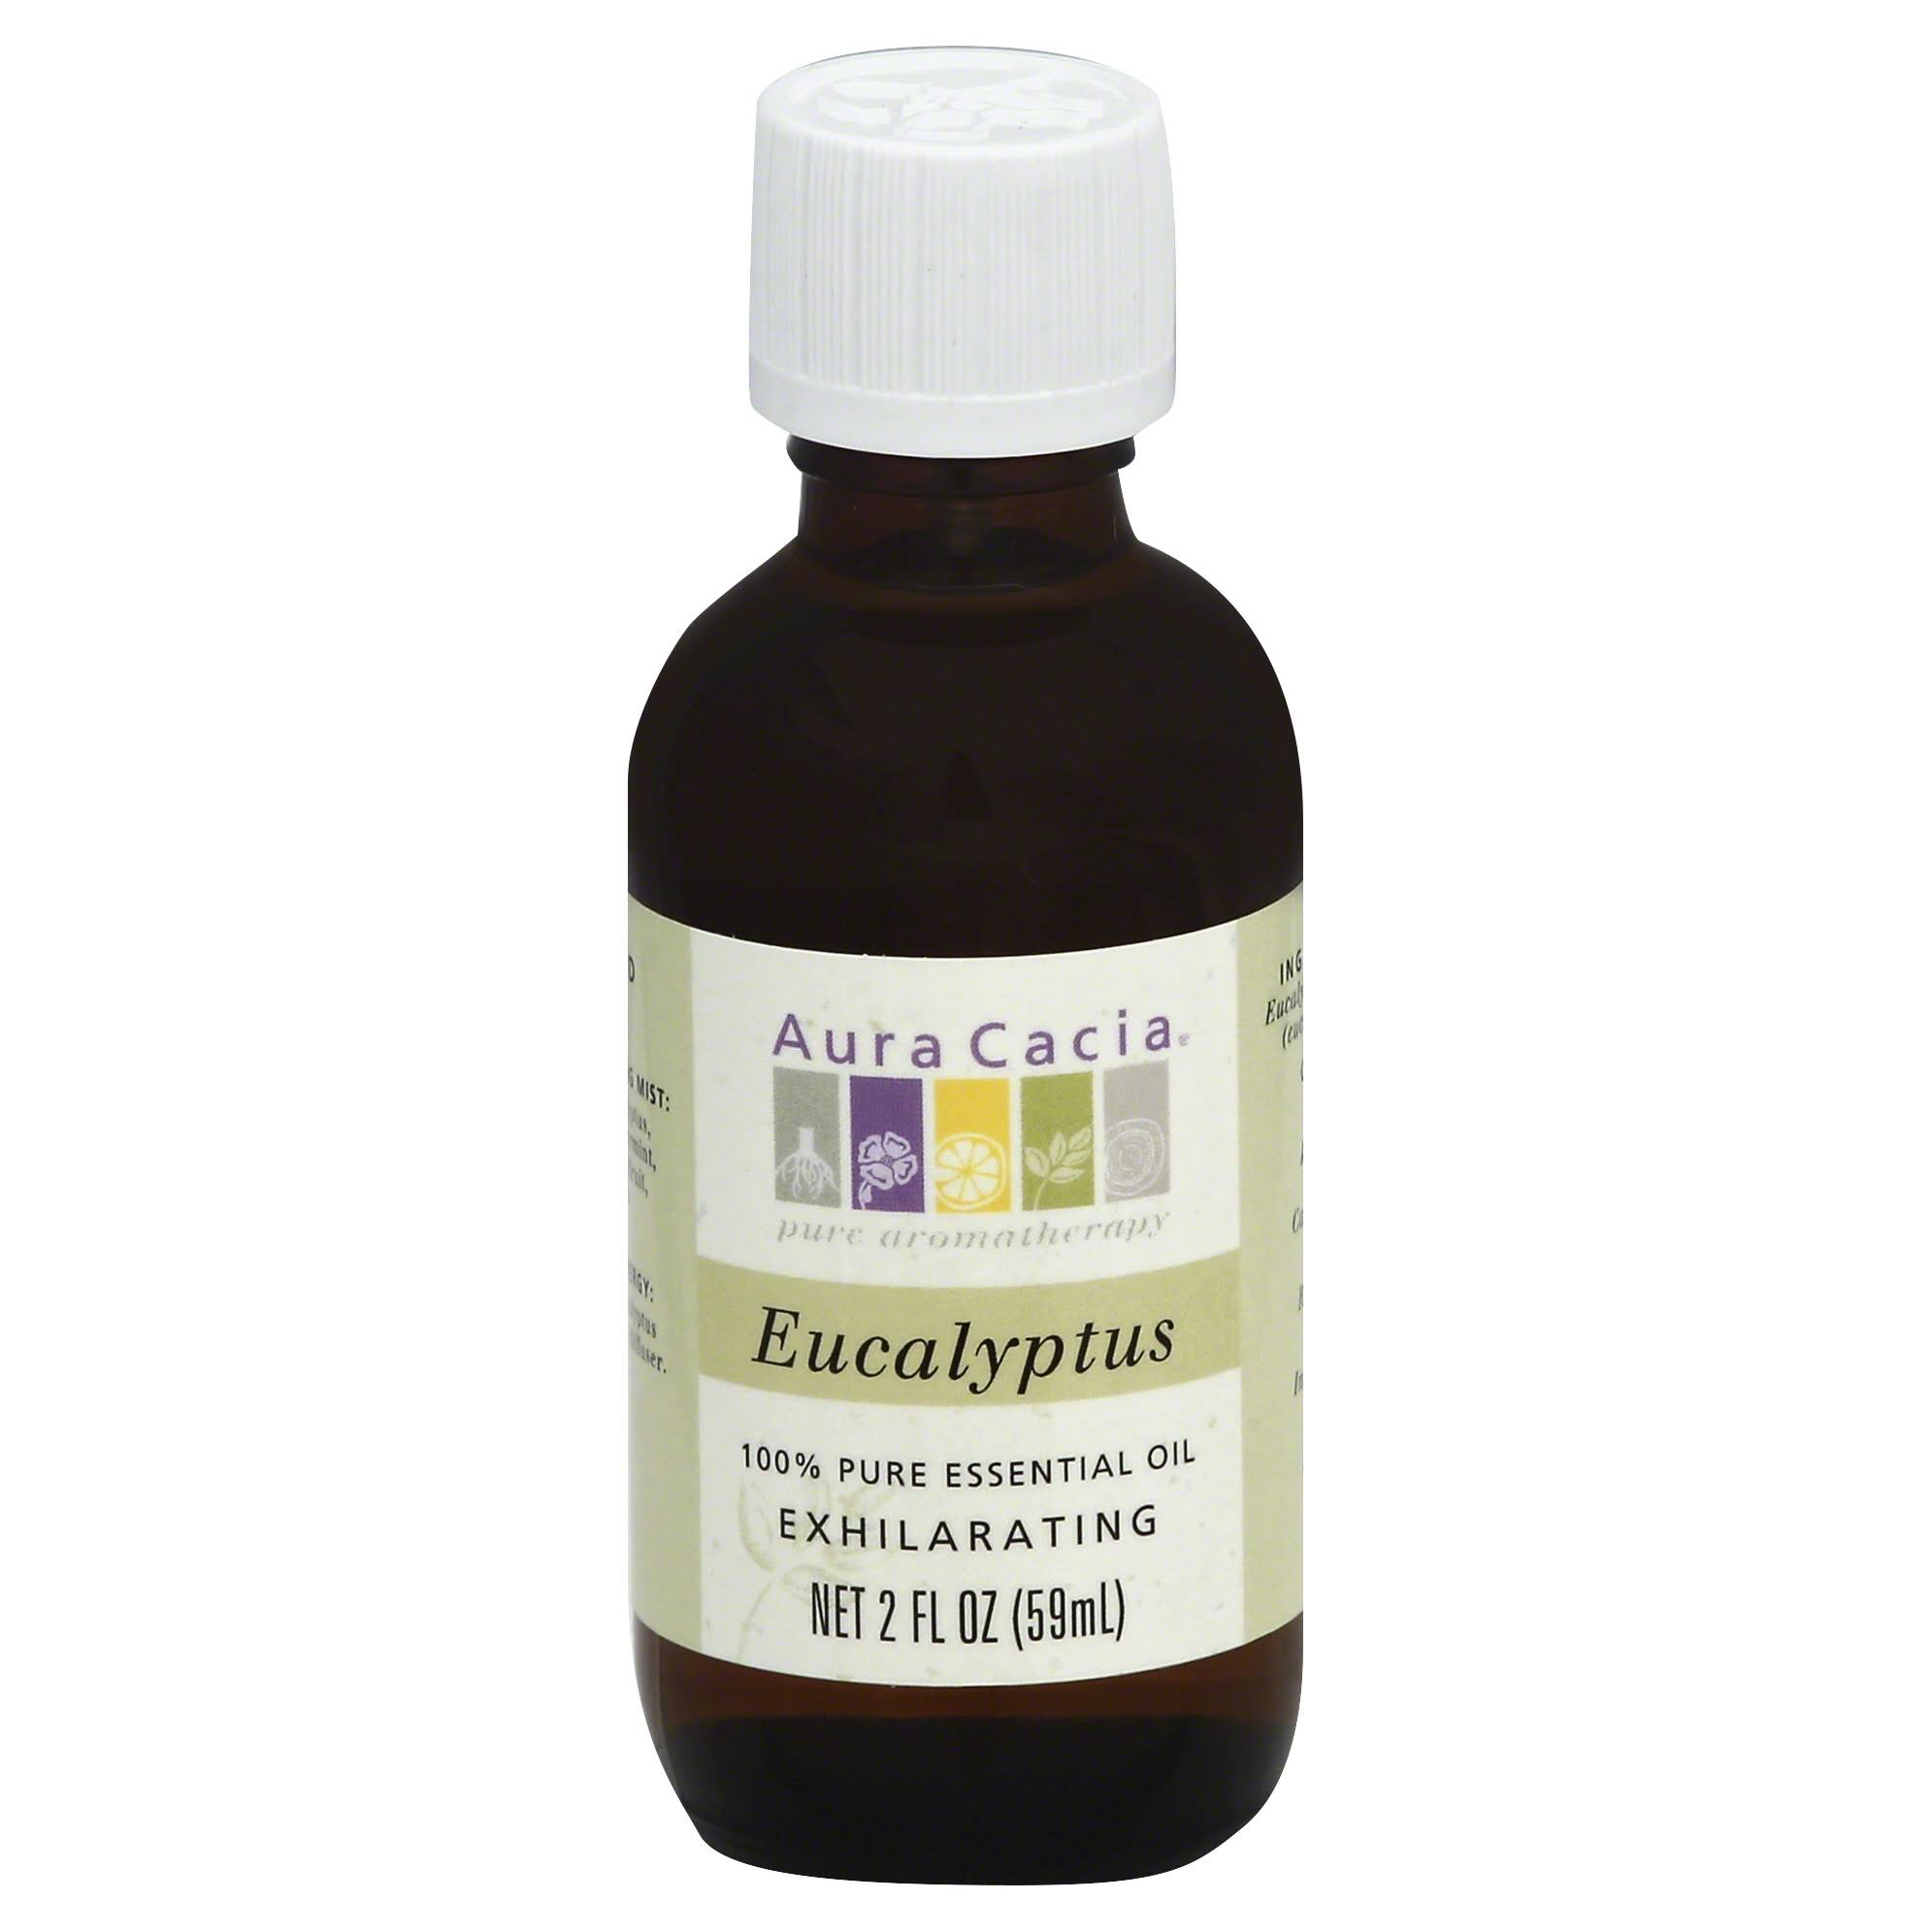 Aura Cacia Essential Oil - Eucalyptus, 59ml